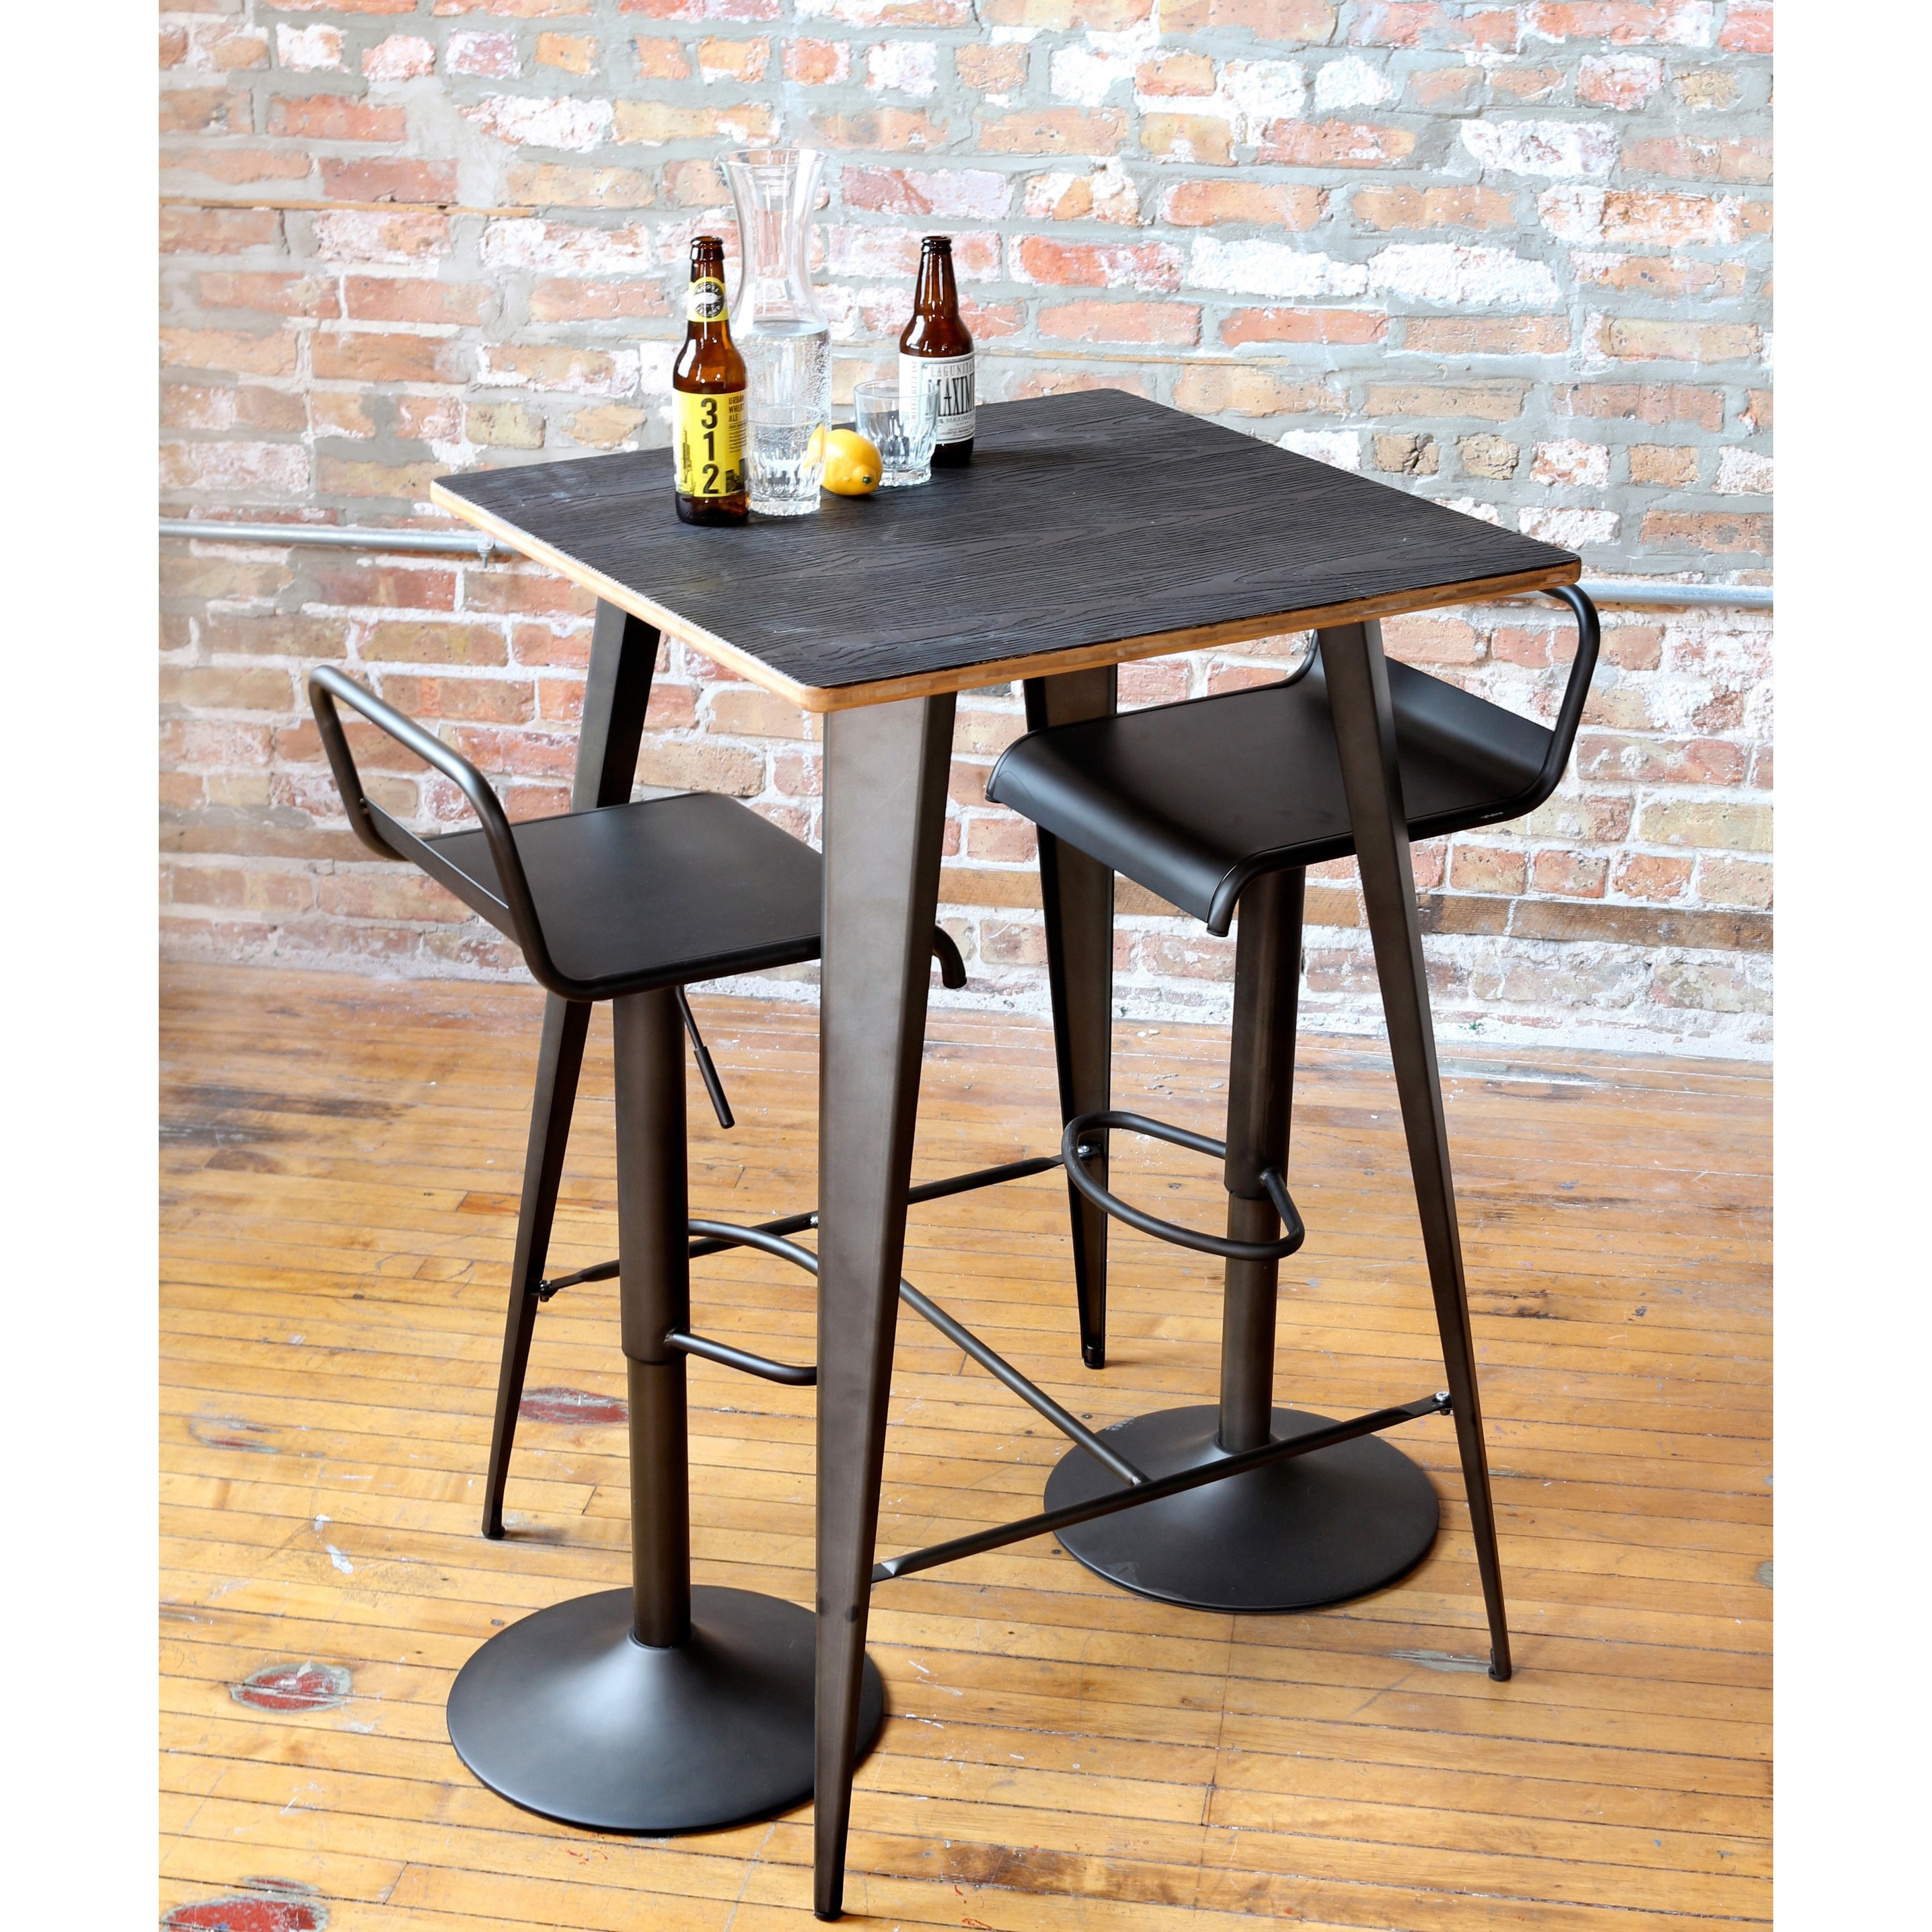 stools product stool furntiure bar img industrial restaurant